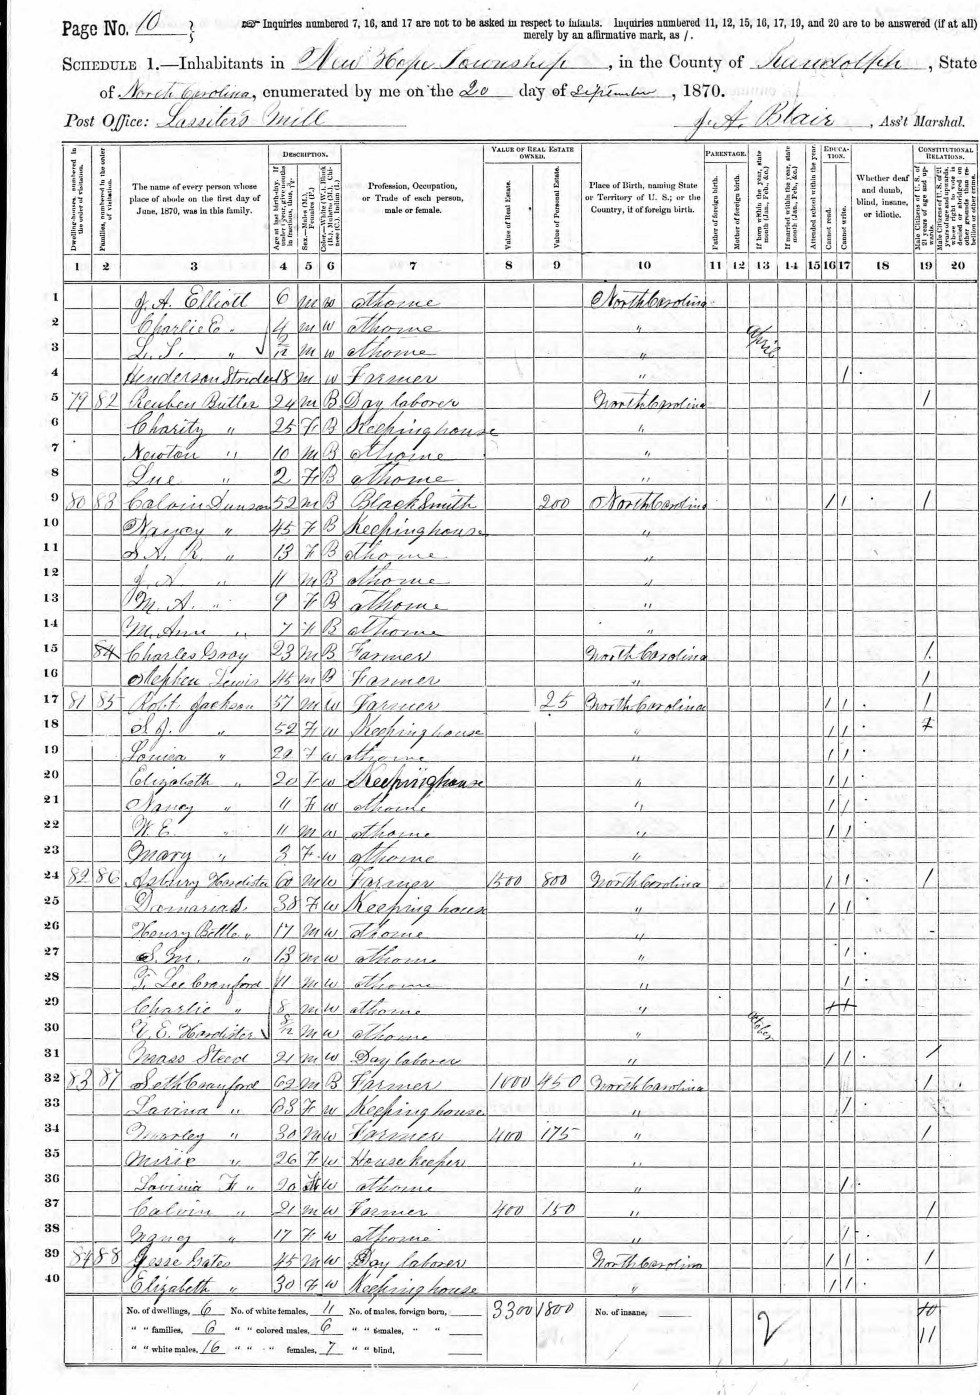 Nancy Dunson 1870 census